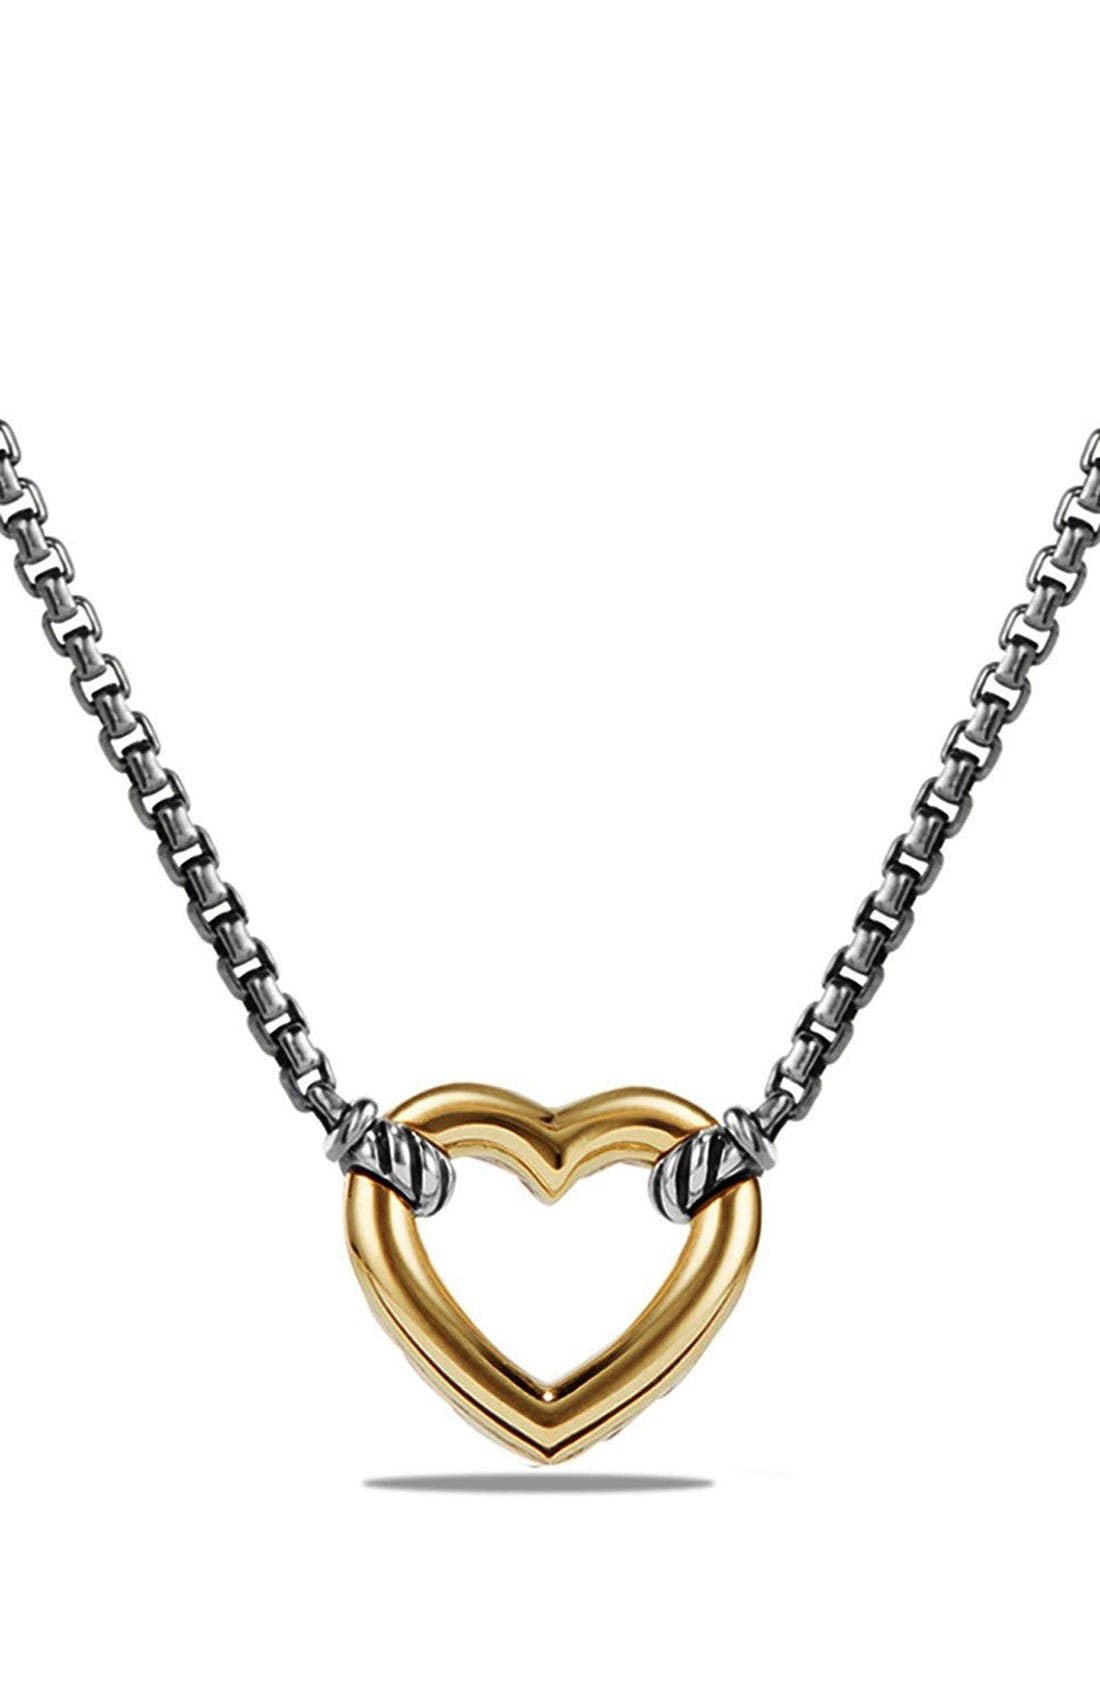 'Cable Collectibles' Heart Station Necklace with 18K Gold,                         Main,                         color, 040